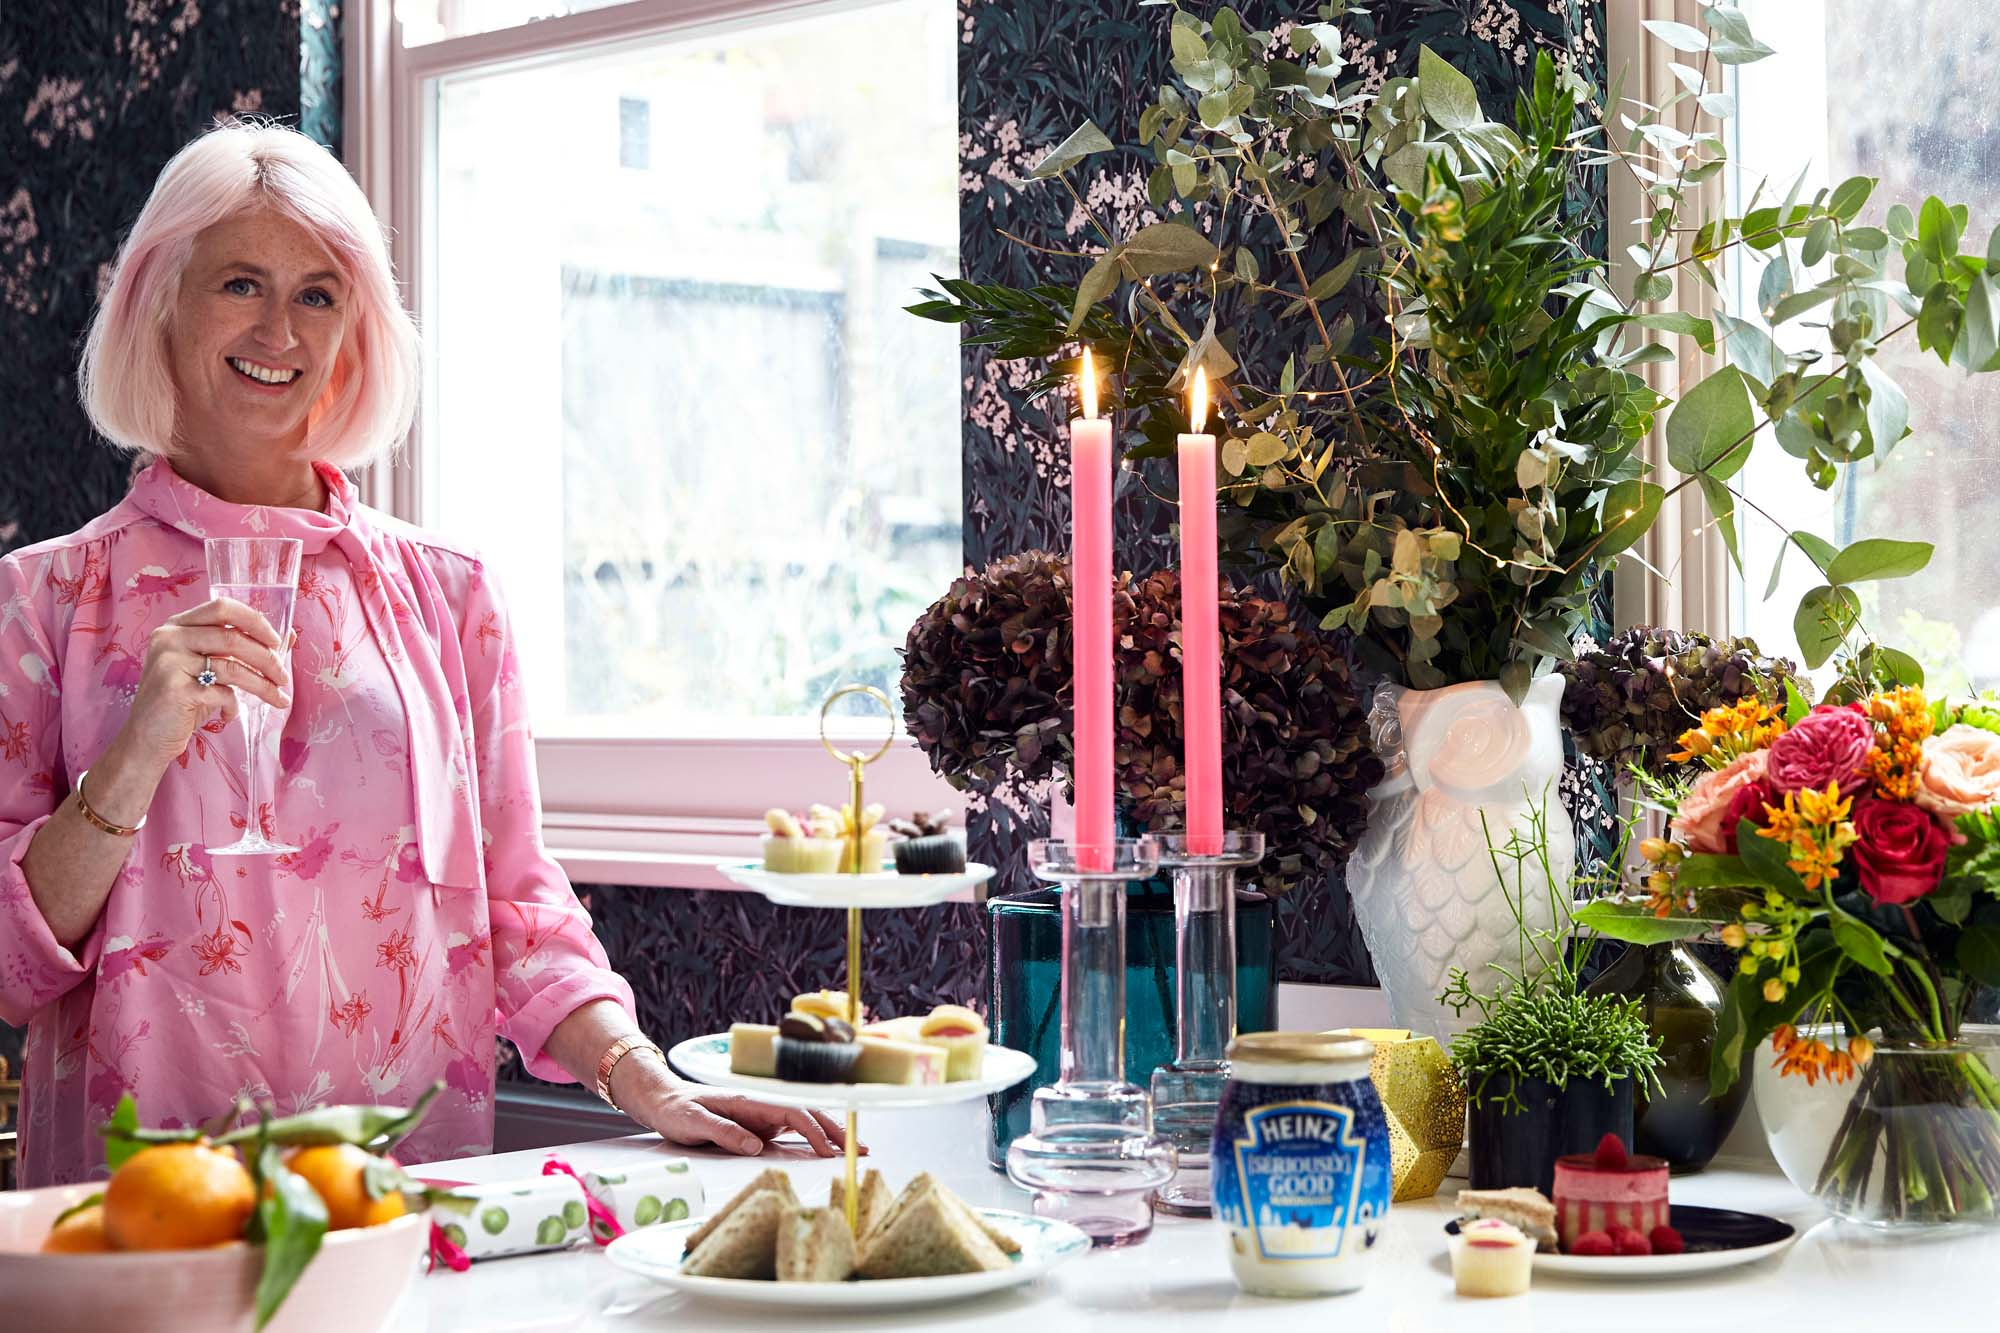 Festive afternoon tea at The Pink House